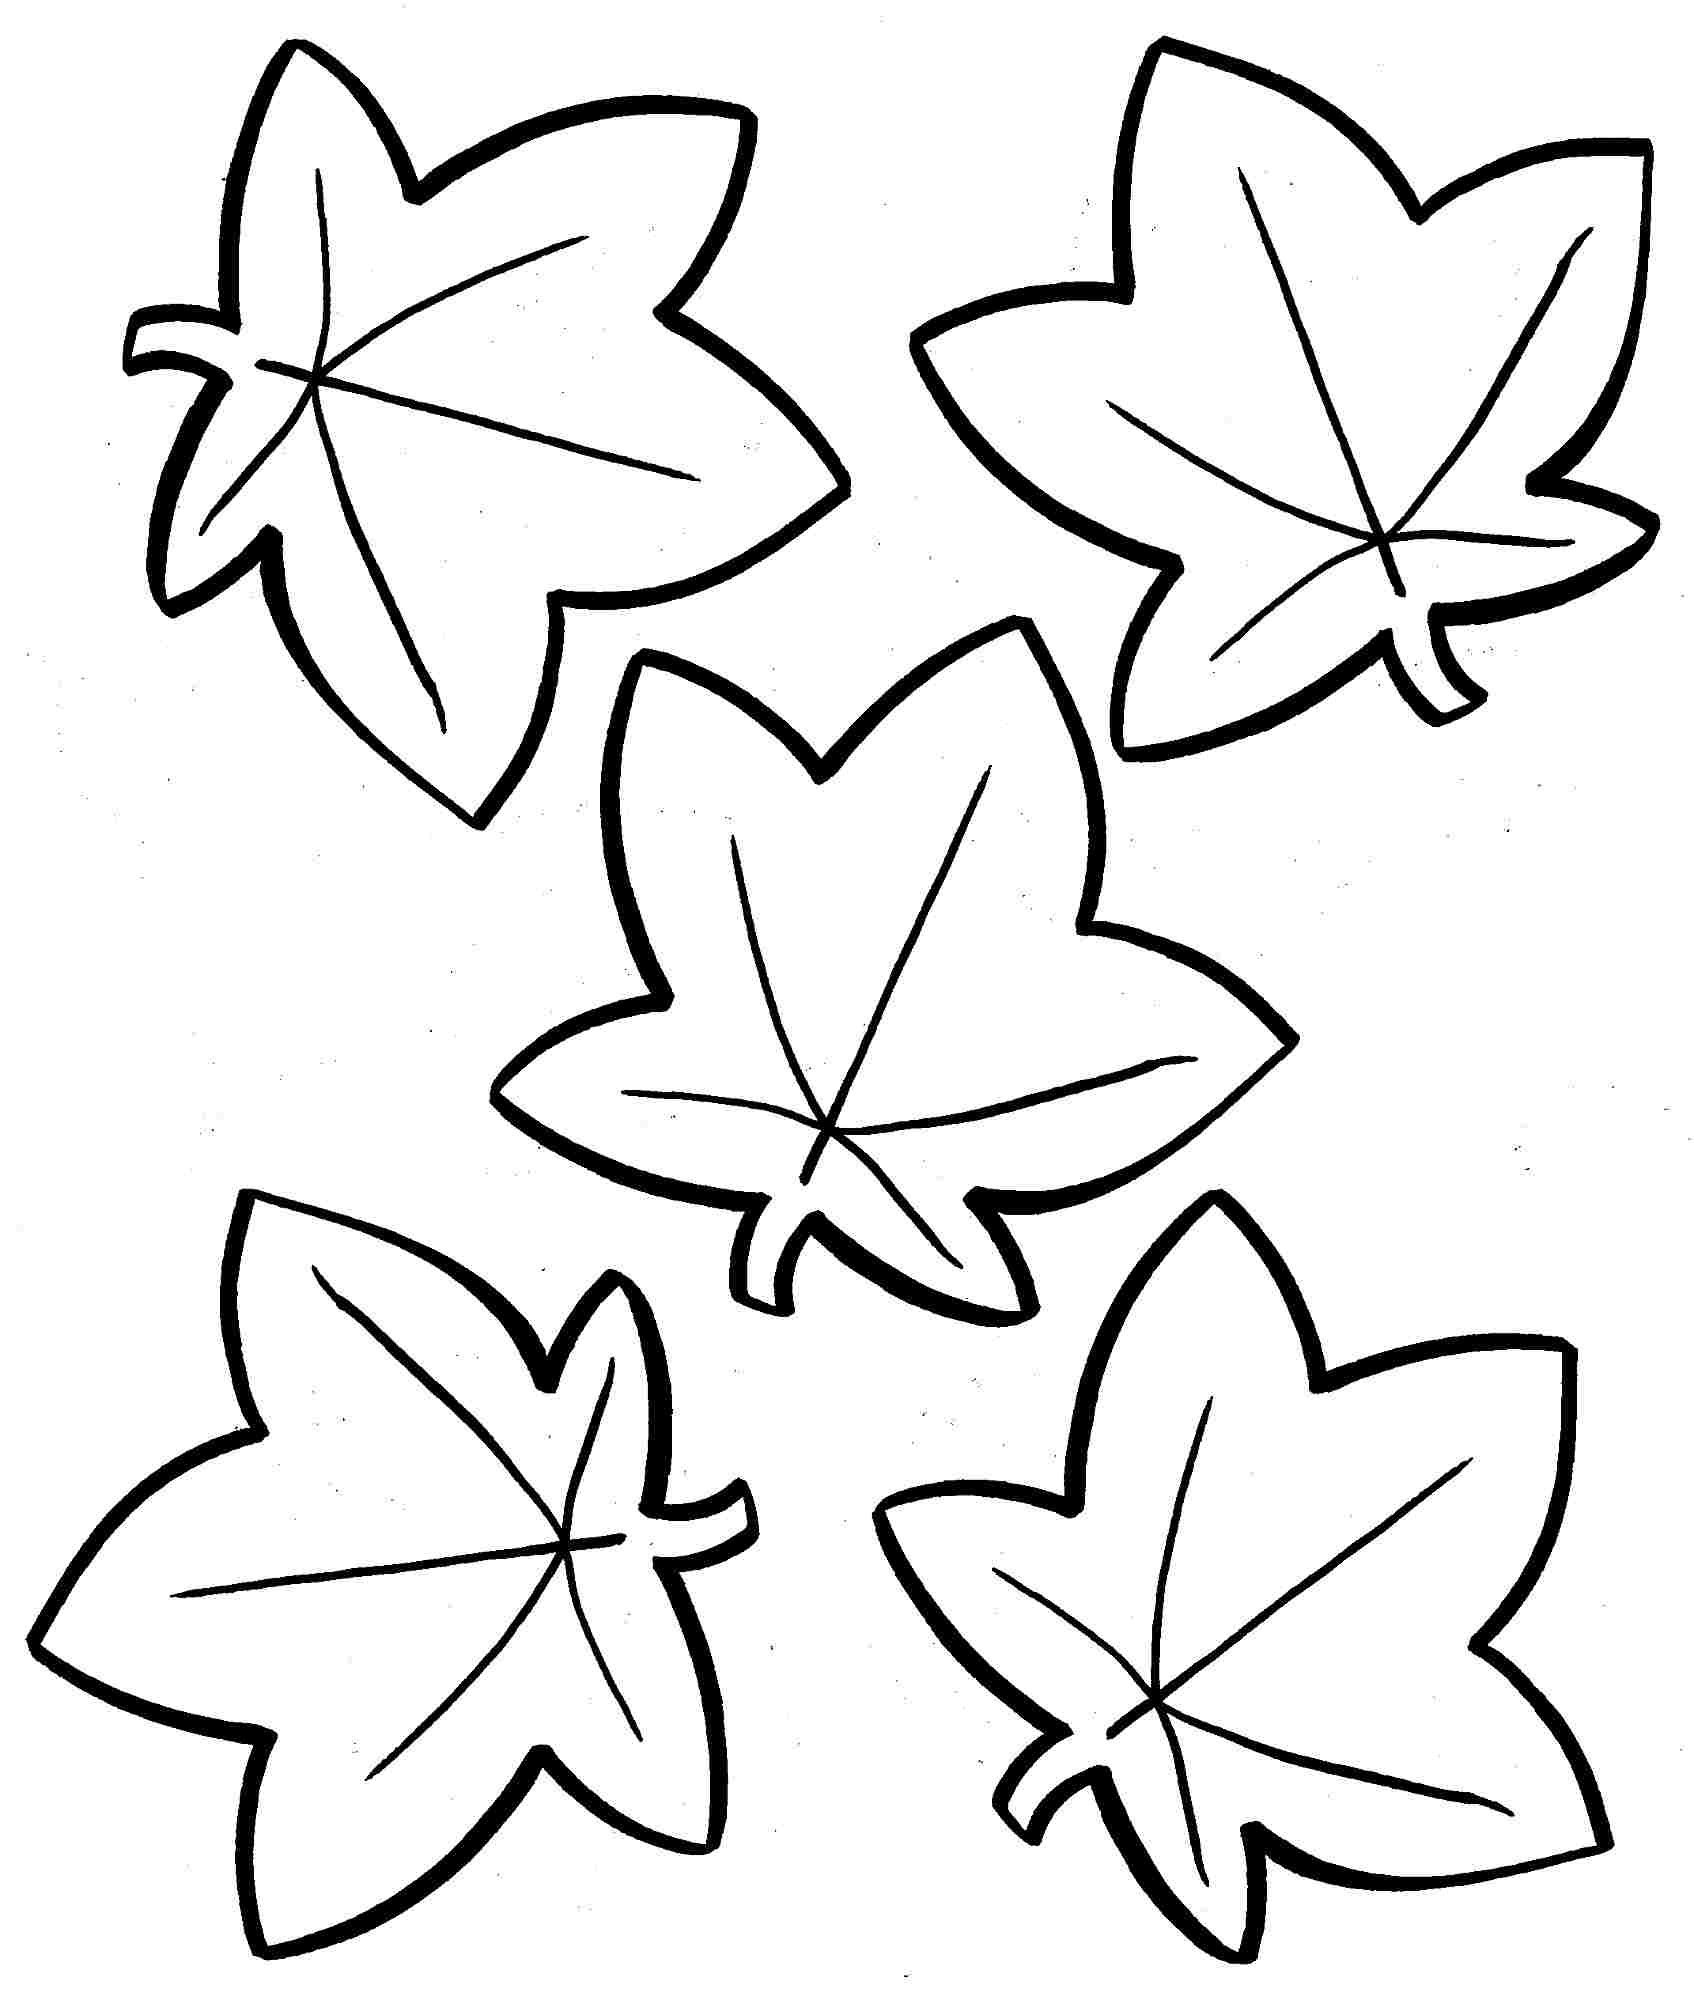 Coloring: Autumn Leaves Coloring Pages. - Free Printable Leaf Coloring Pages